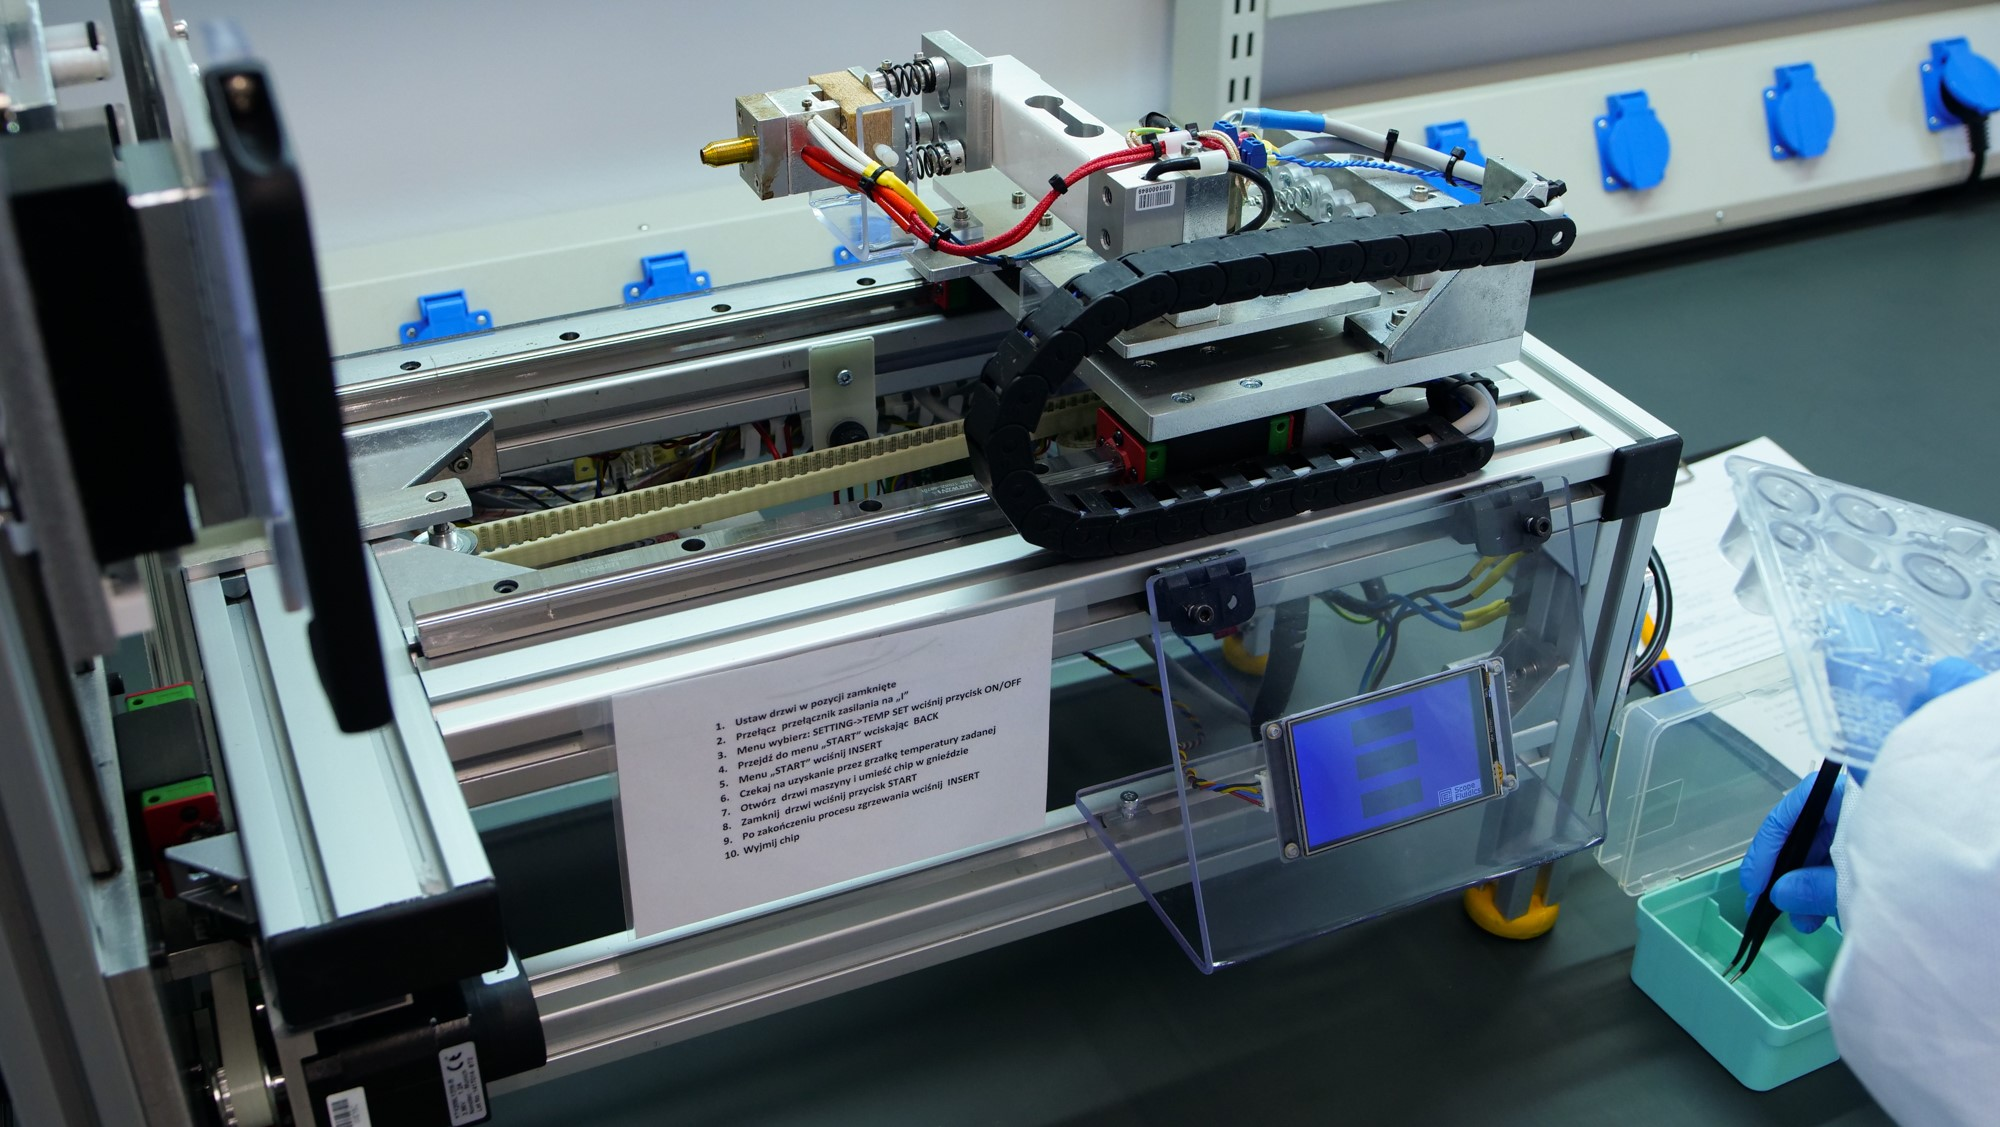 Scope Fluidics is developing an Ultra-Fast COVID-19 Panel for its PCR|ONE Rapid Molecular Diagnostic System